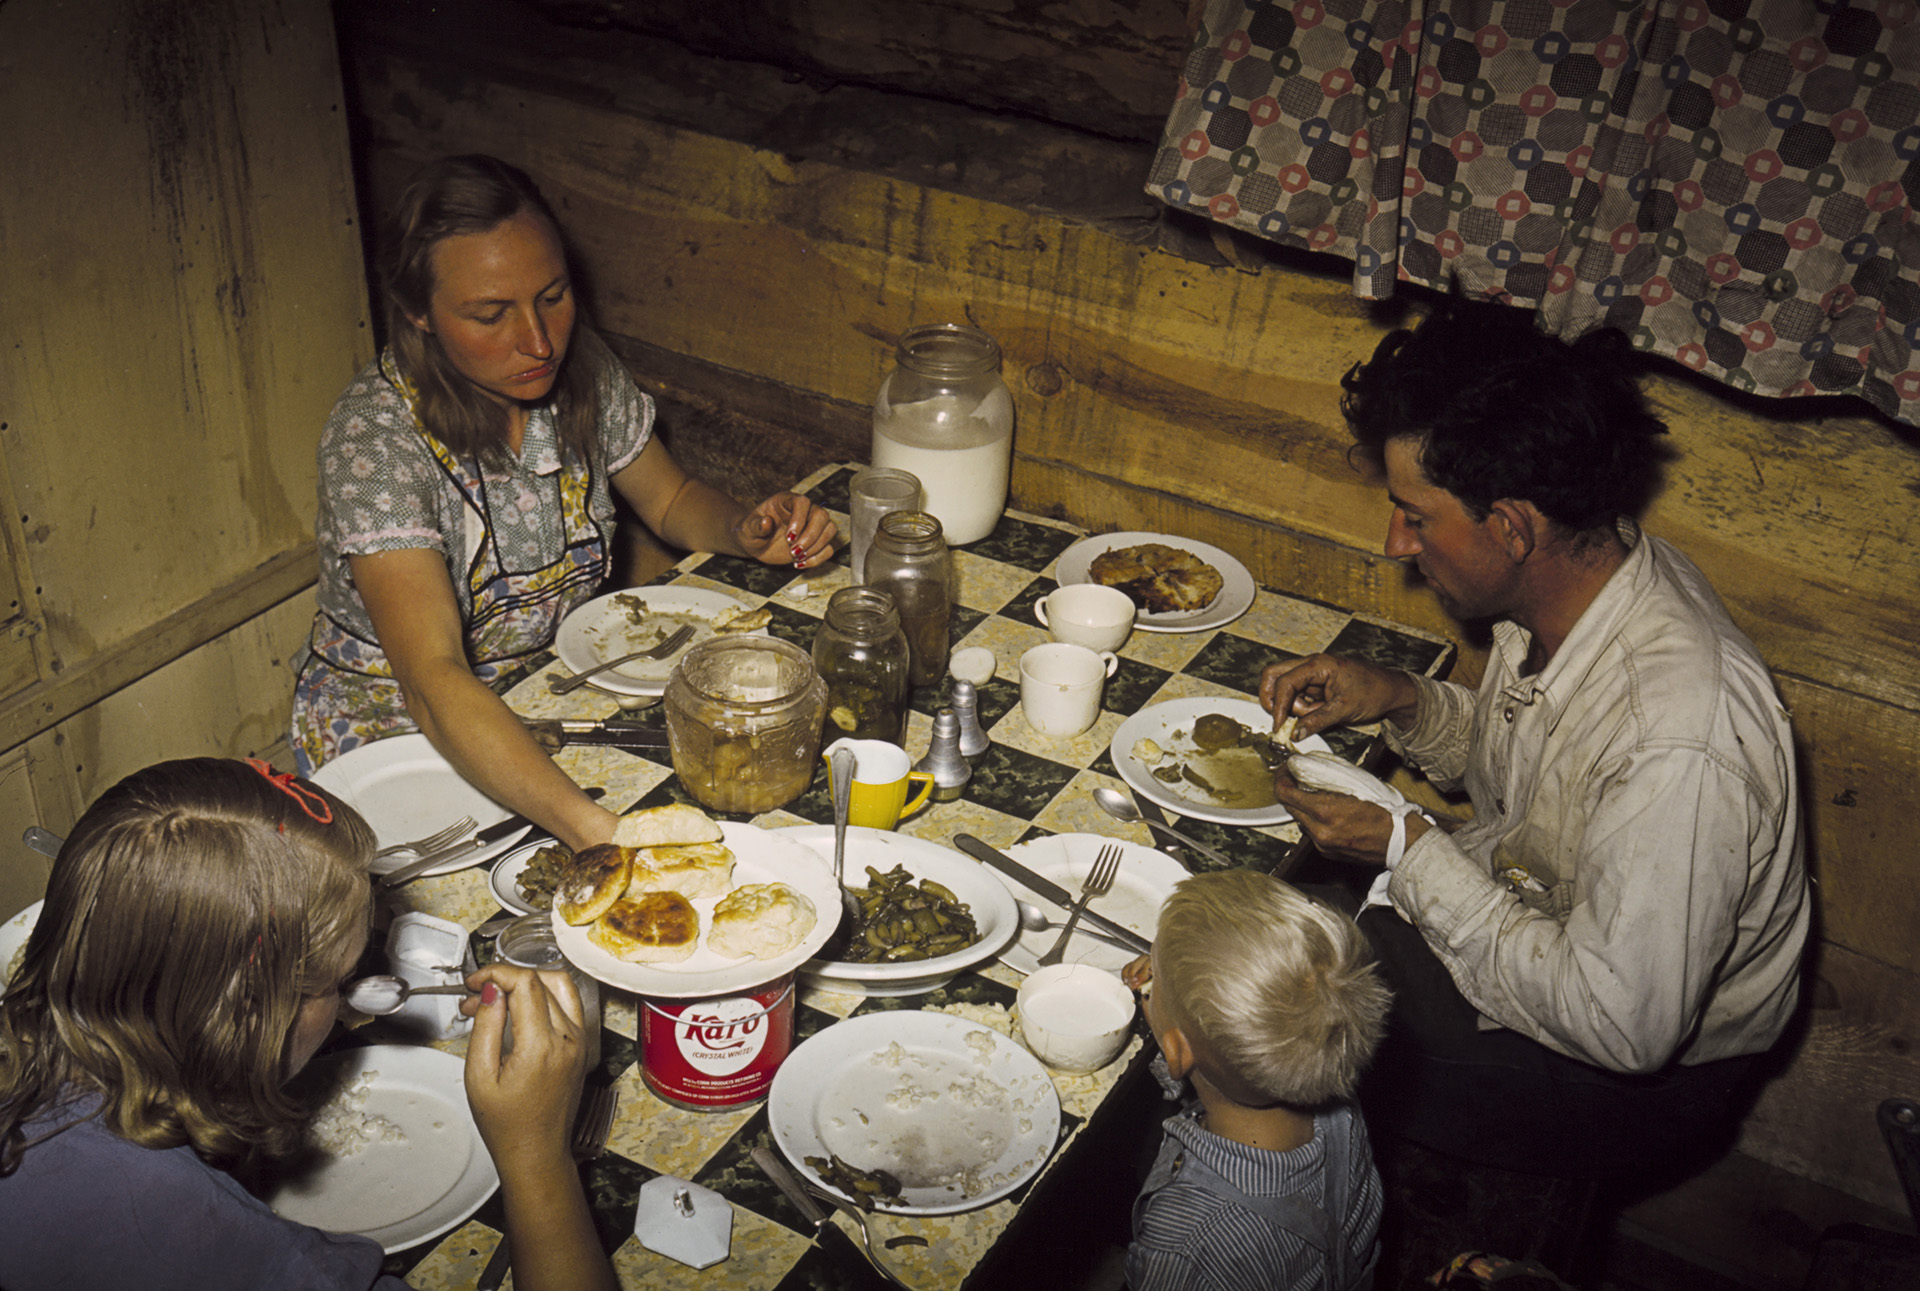 Fotó: Russell Lee: The Faro Caudill Family Eating Dinner in Their Dugout, Pie Town, New Mexico, 1940 Courtesy The Library of Congress Prints and Photographs Division